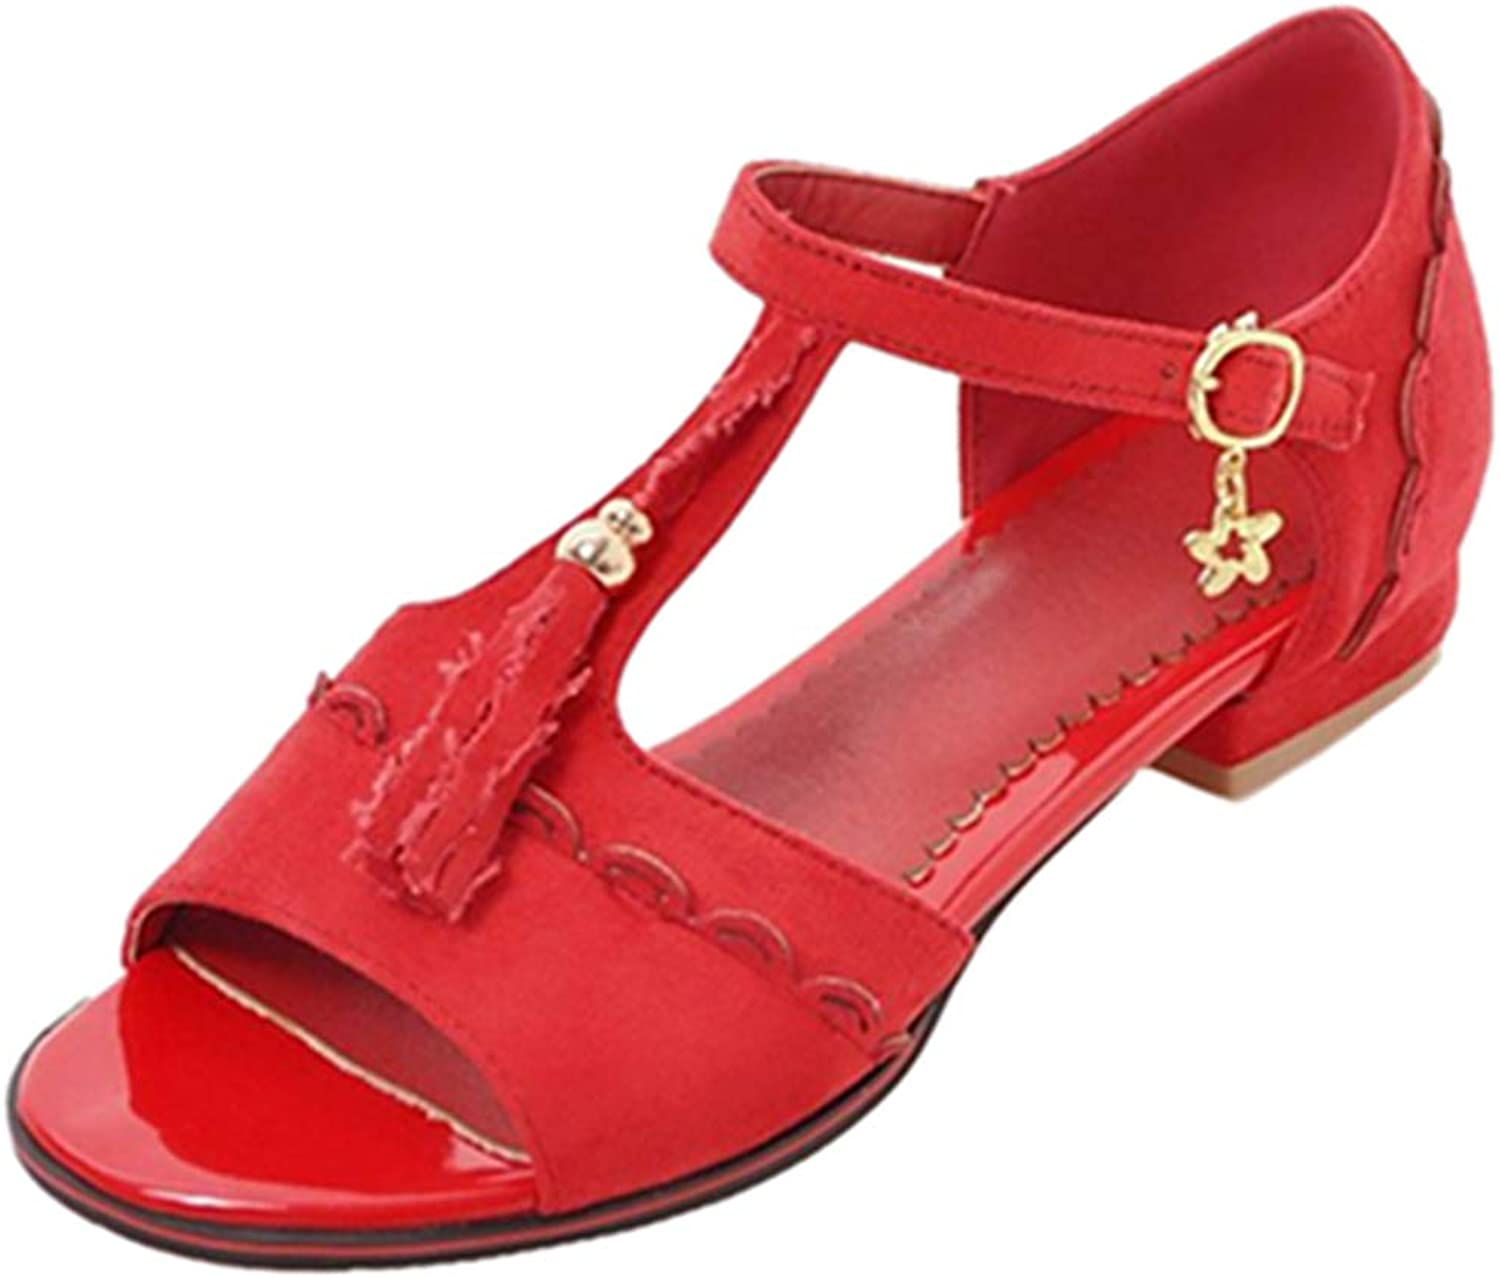 Lashoes Women Sandals with Low Heel and Peep Toe